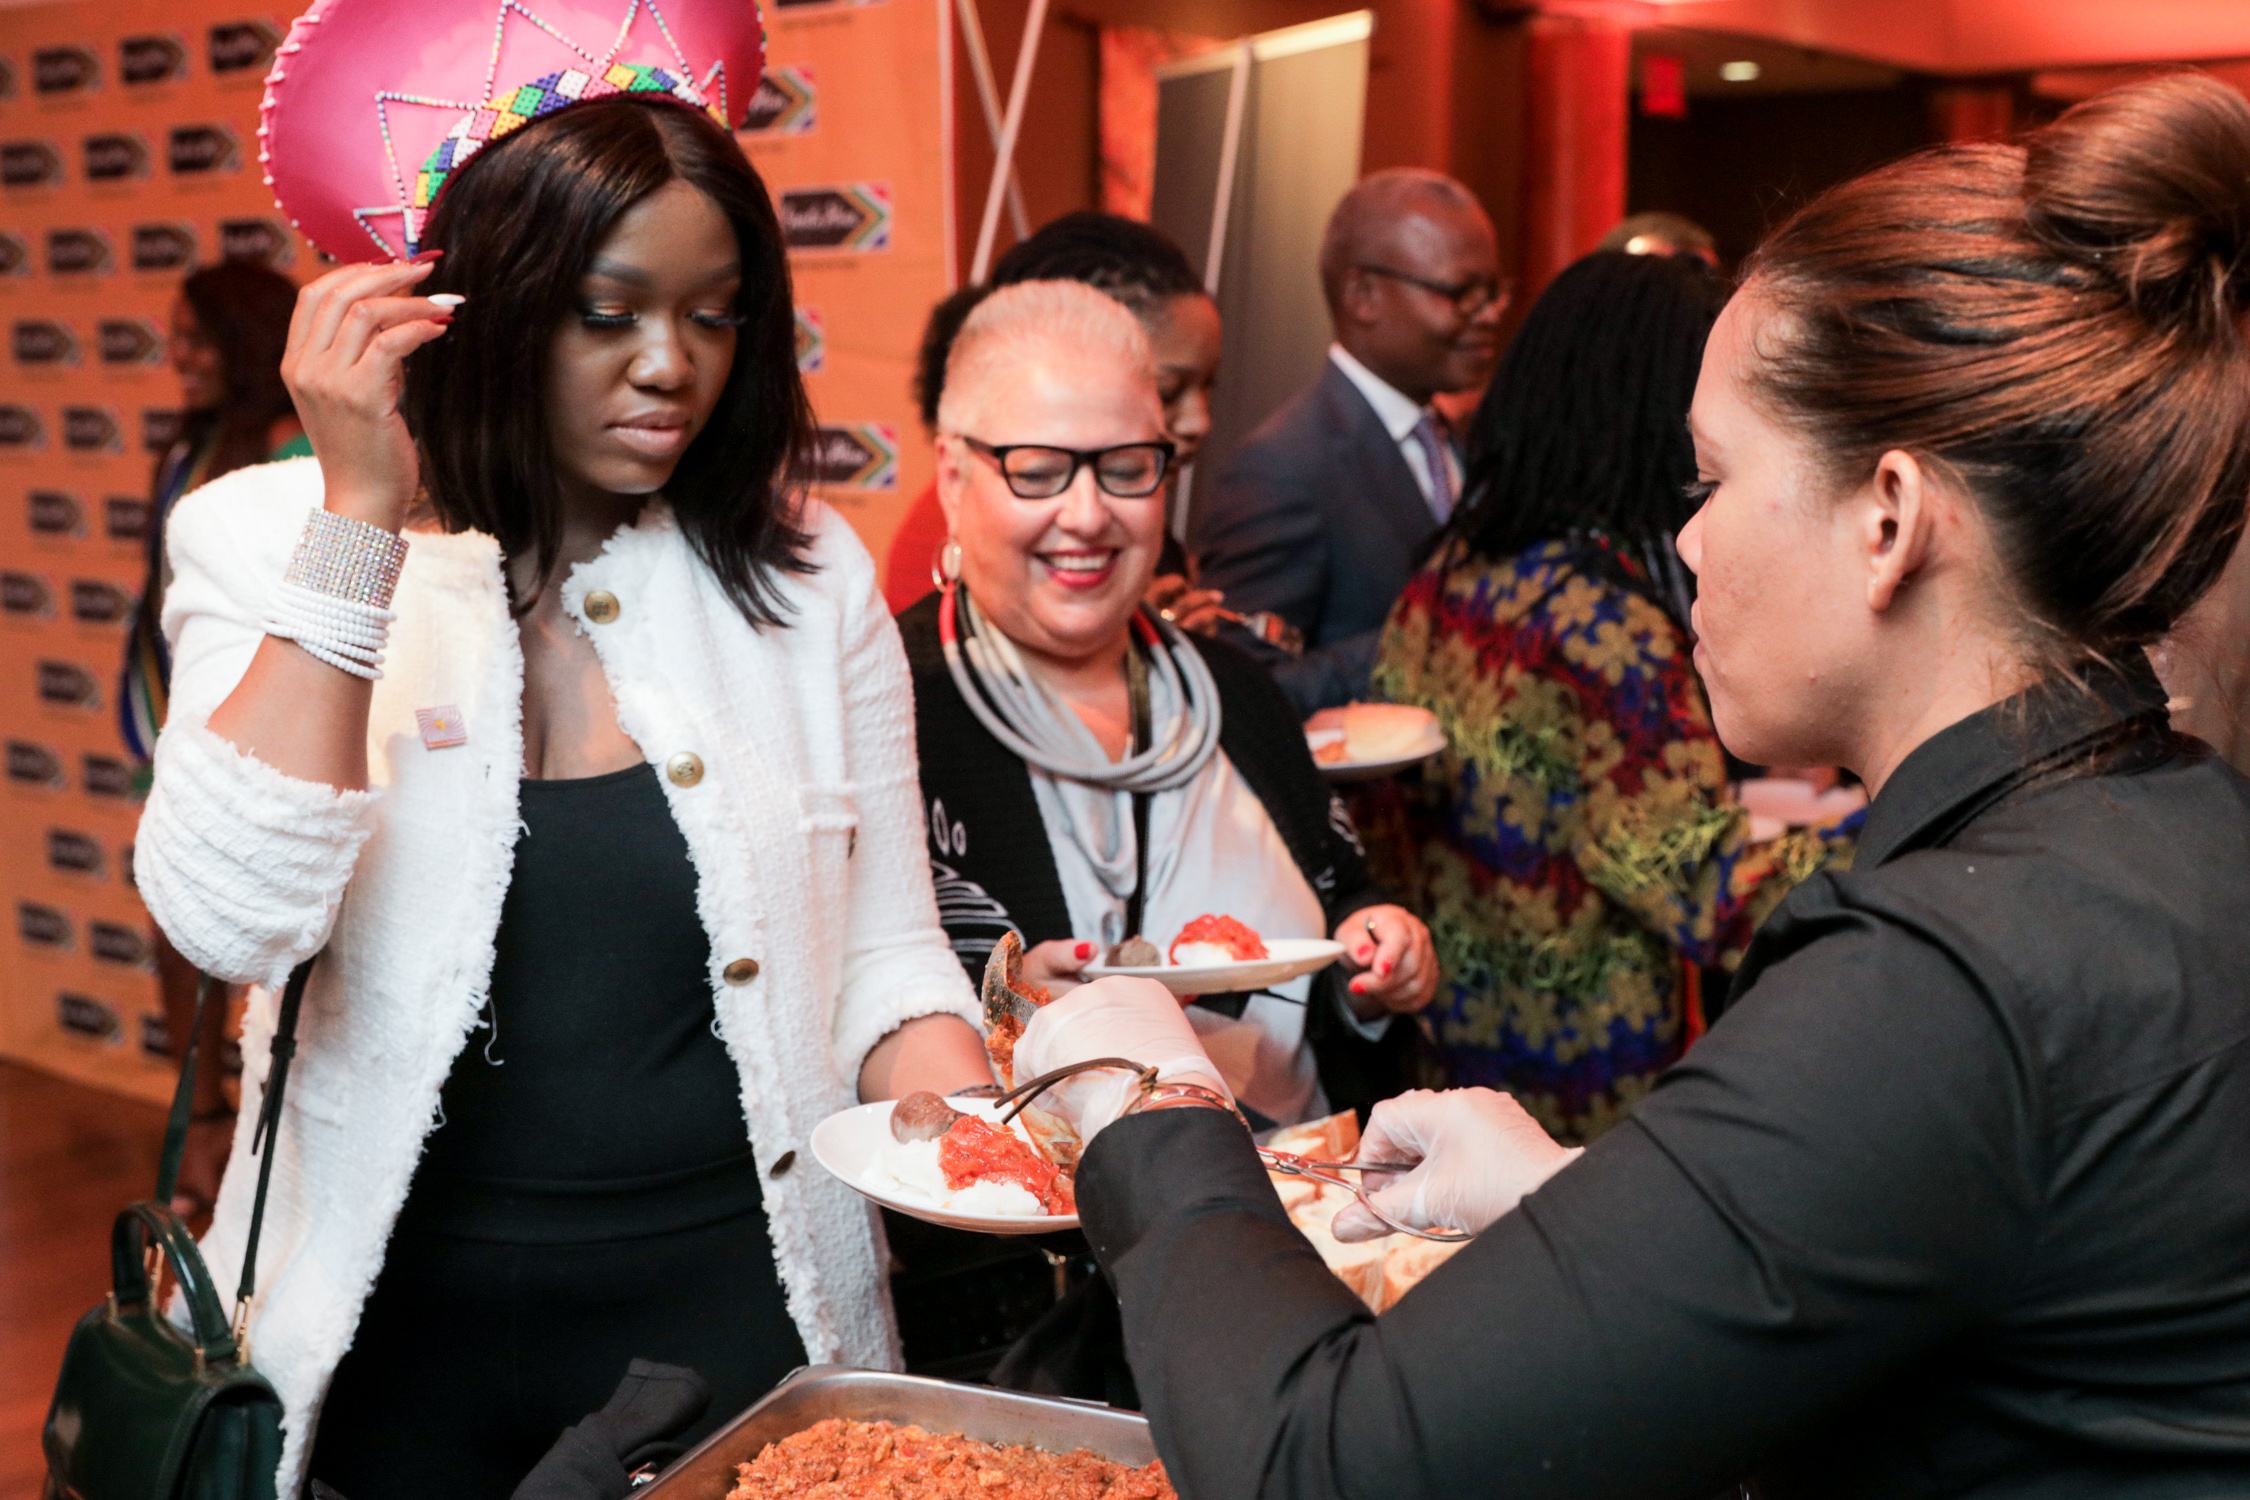 Guests Enjoying South African Food